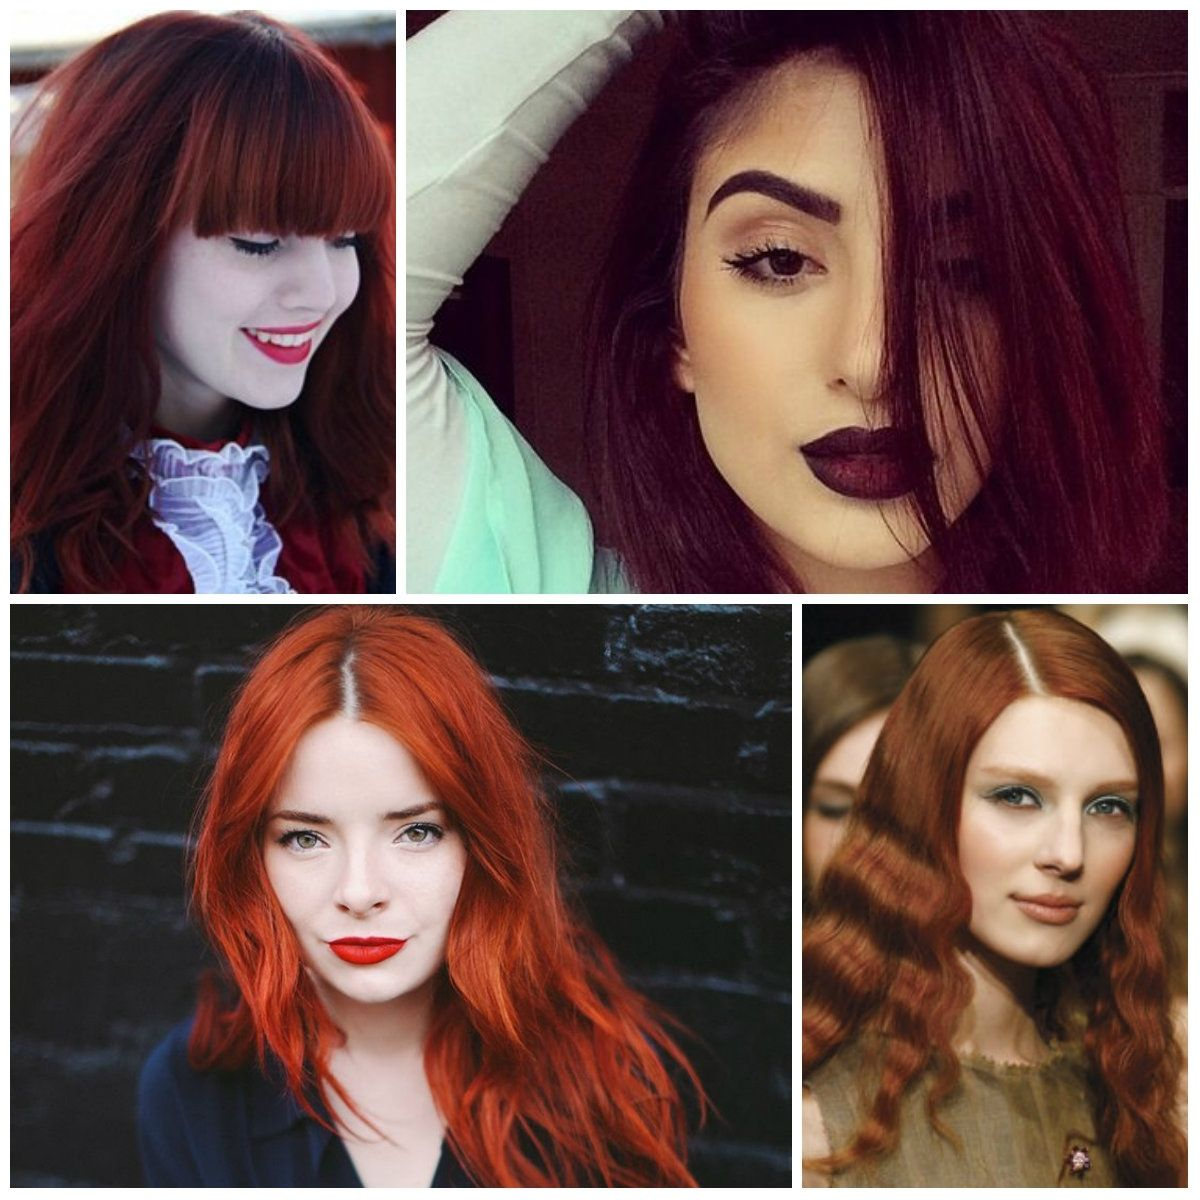 Red Hair Colors For Cool Skin Tones Best Hair Color For Dark Skin Women Check More At Http Frenzyhairstudio Com Red Hair Colors For Cool Sk Hair Hair Cabelo